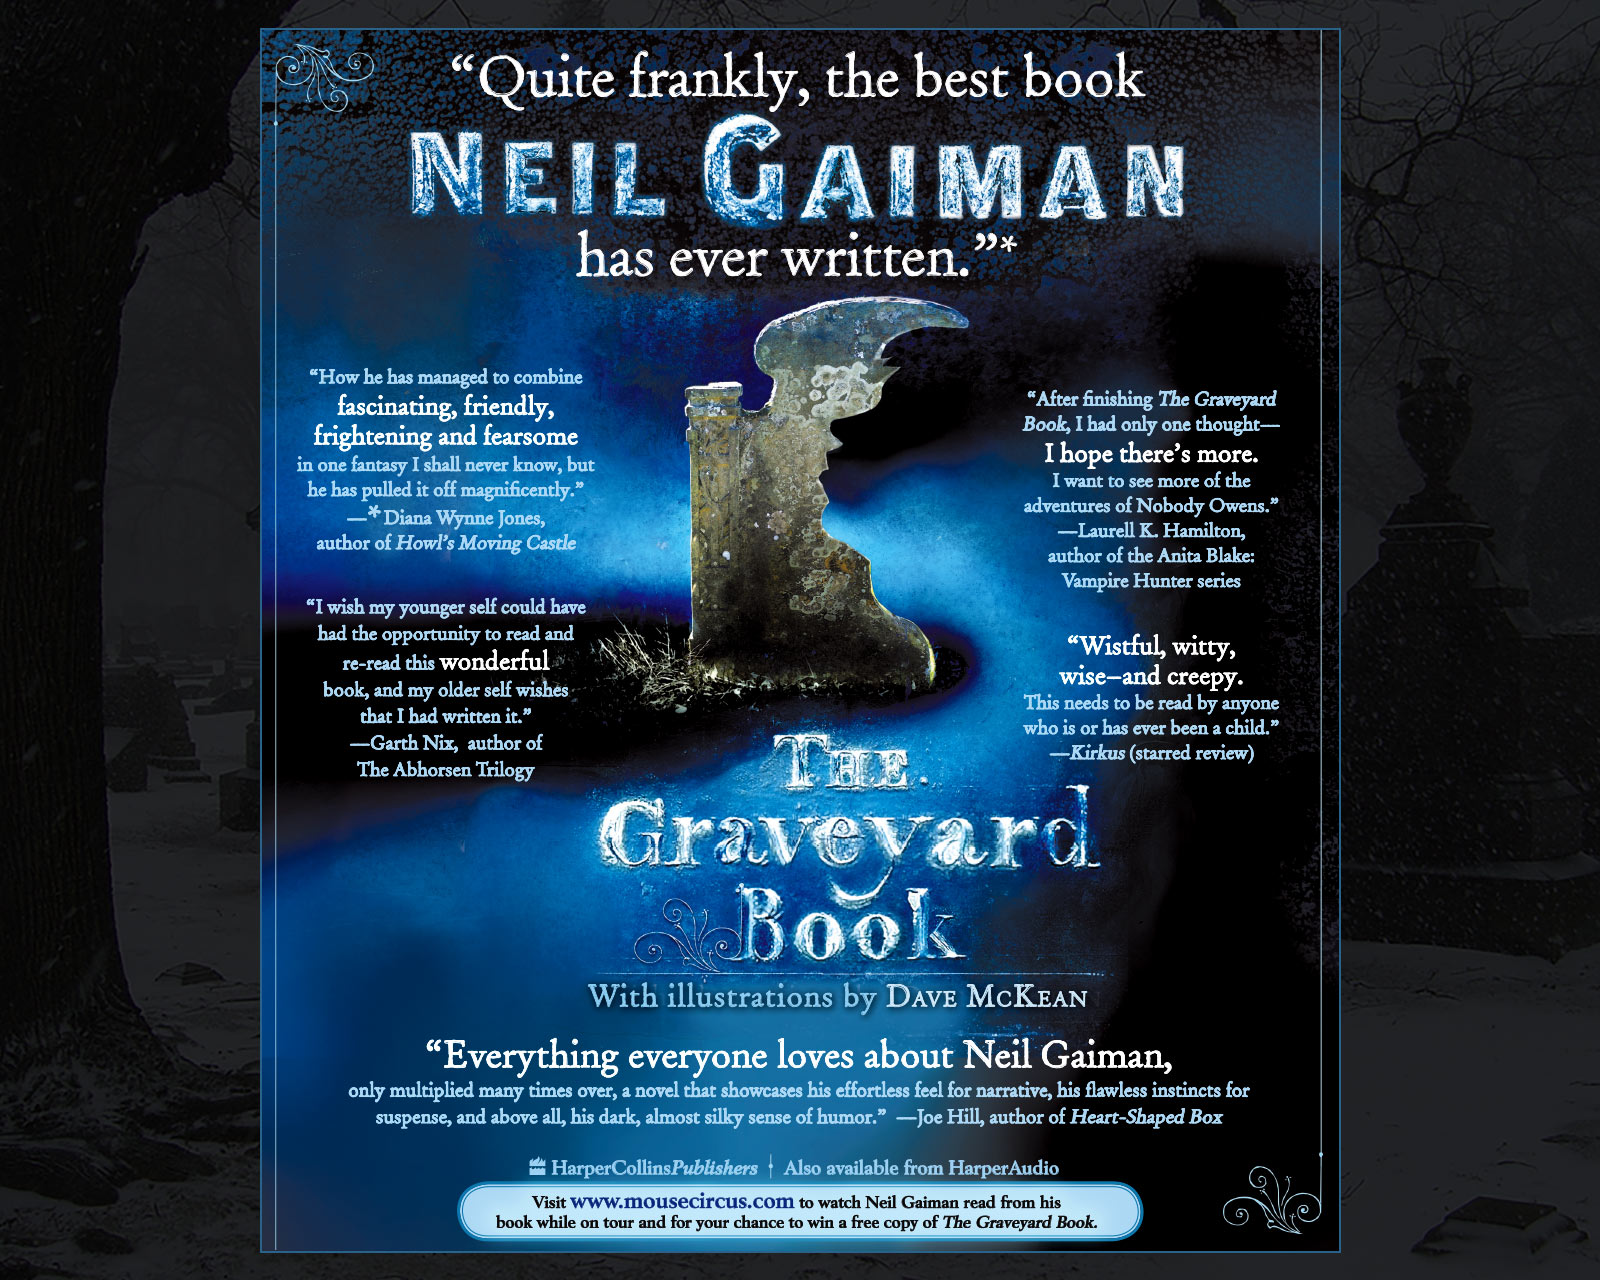 Neil Gaiman - The Graveyard Book - New York Times Book Review Full Page Ad